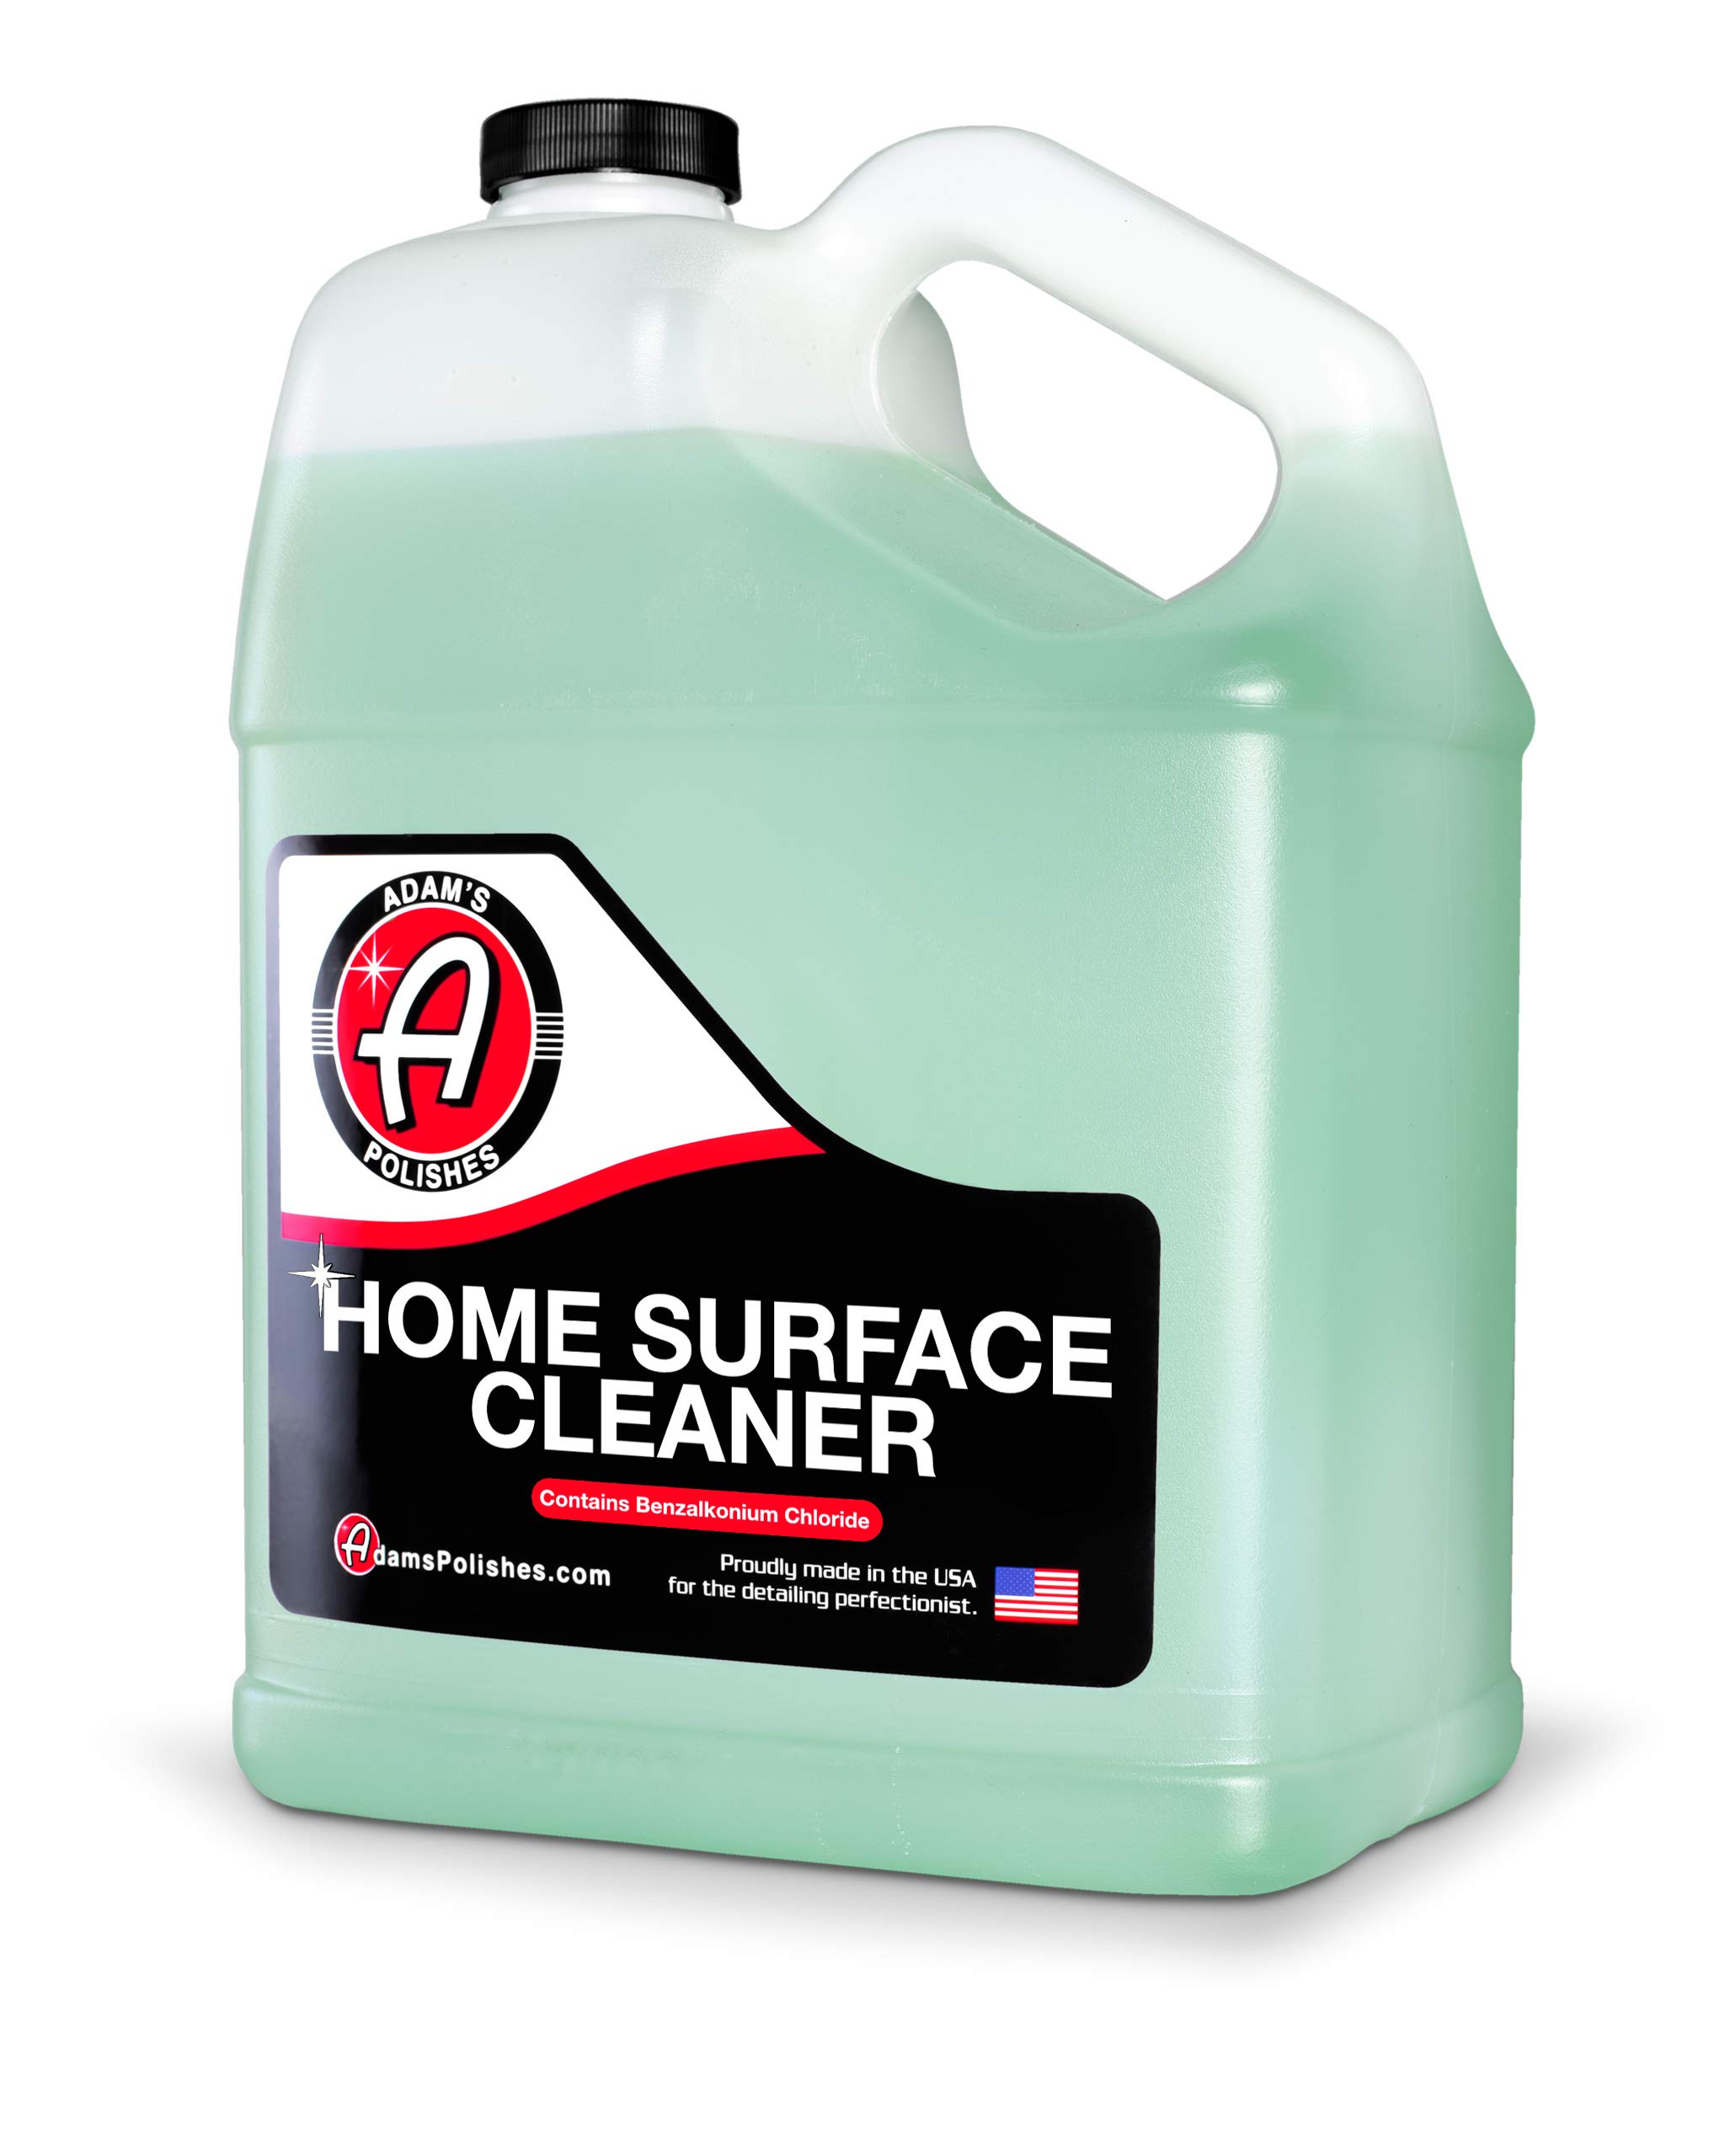 Adam's Home Surface Cleaner - Quickly, Safely Remove & Clean In Home Surfaces   Removes Odors, Non-Bleaching Formula For Your Kitchen, Bathroom, Floor & More   Contains Benzalkonium Chloride (Gallon)